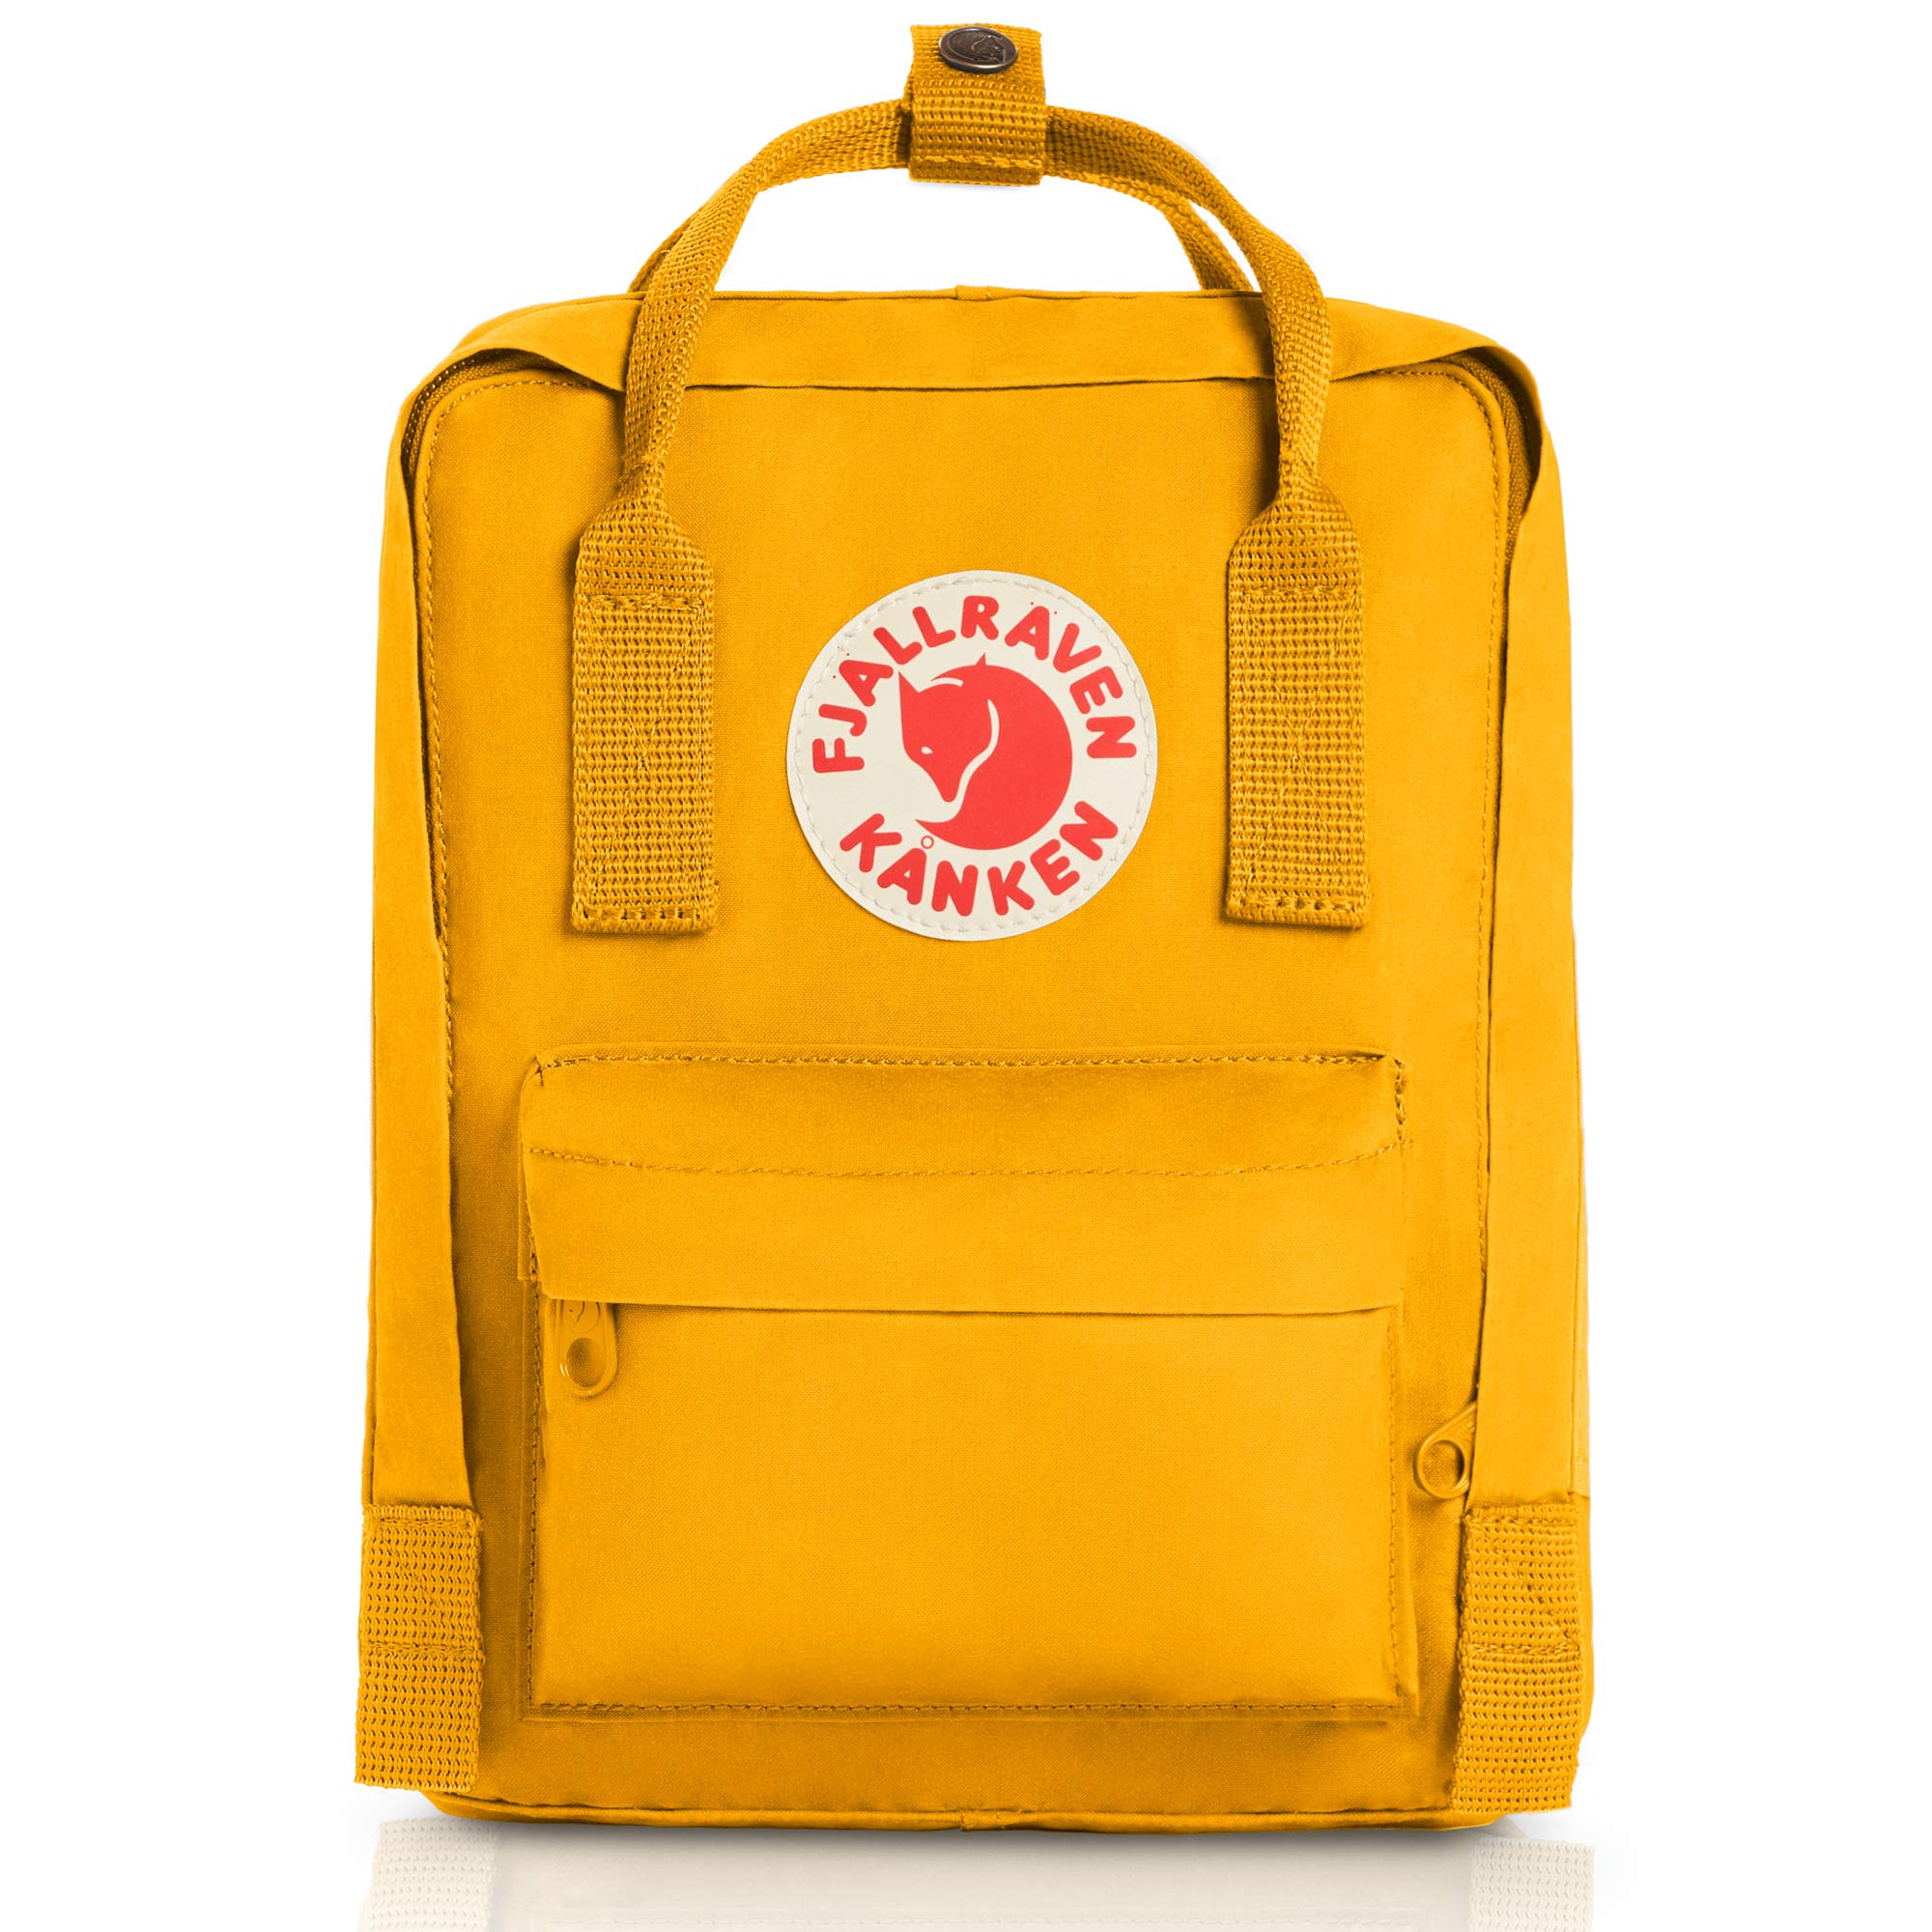 Fjallraven - Kanken Mini Classic Backpack for Everyday, Warm Yellow by Fjallraven